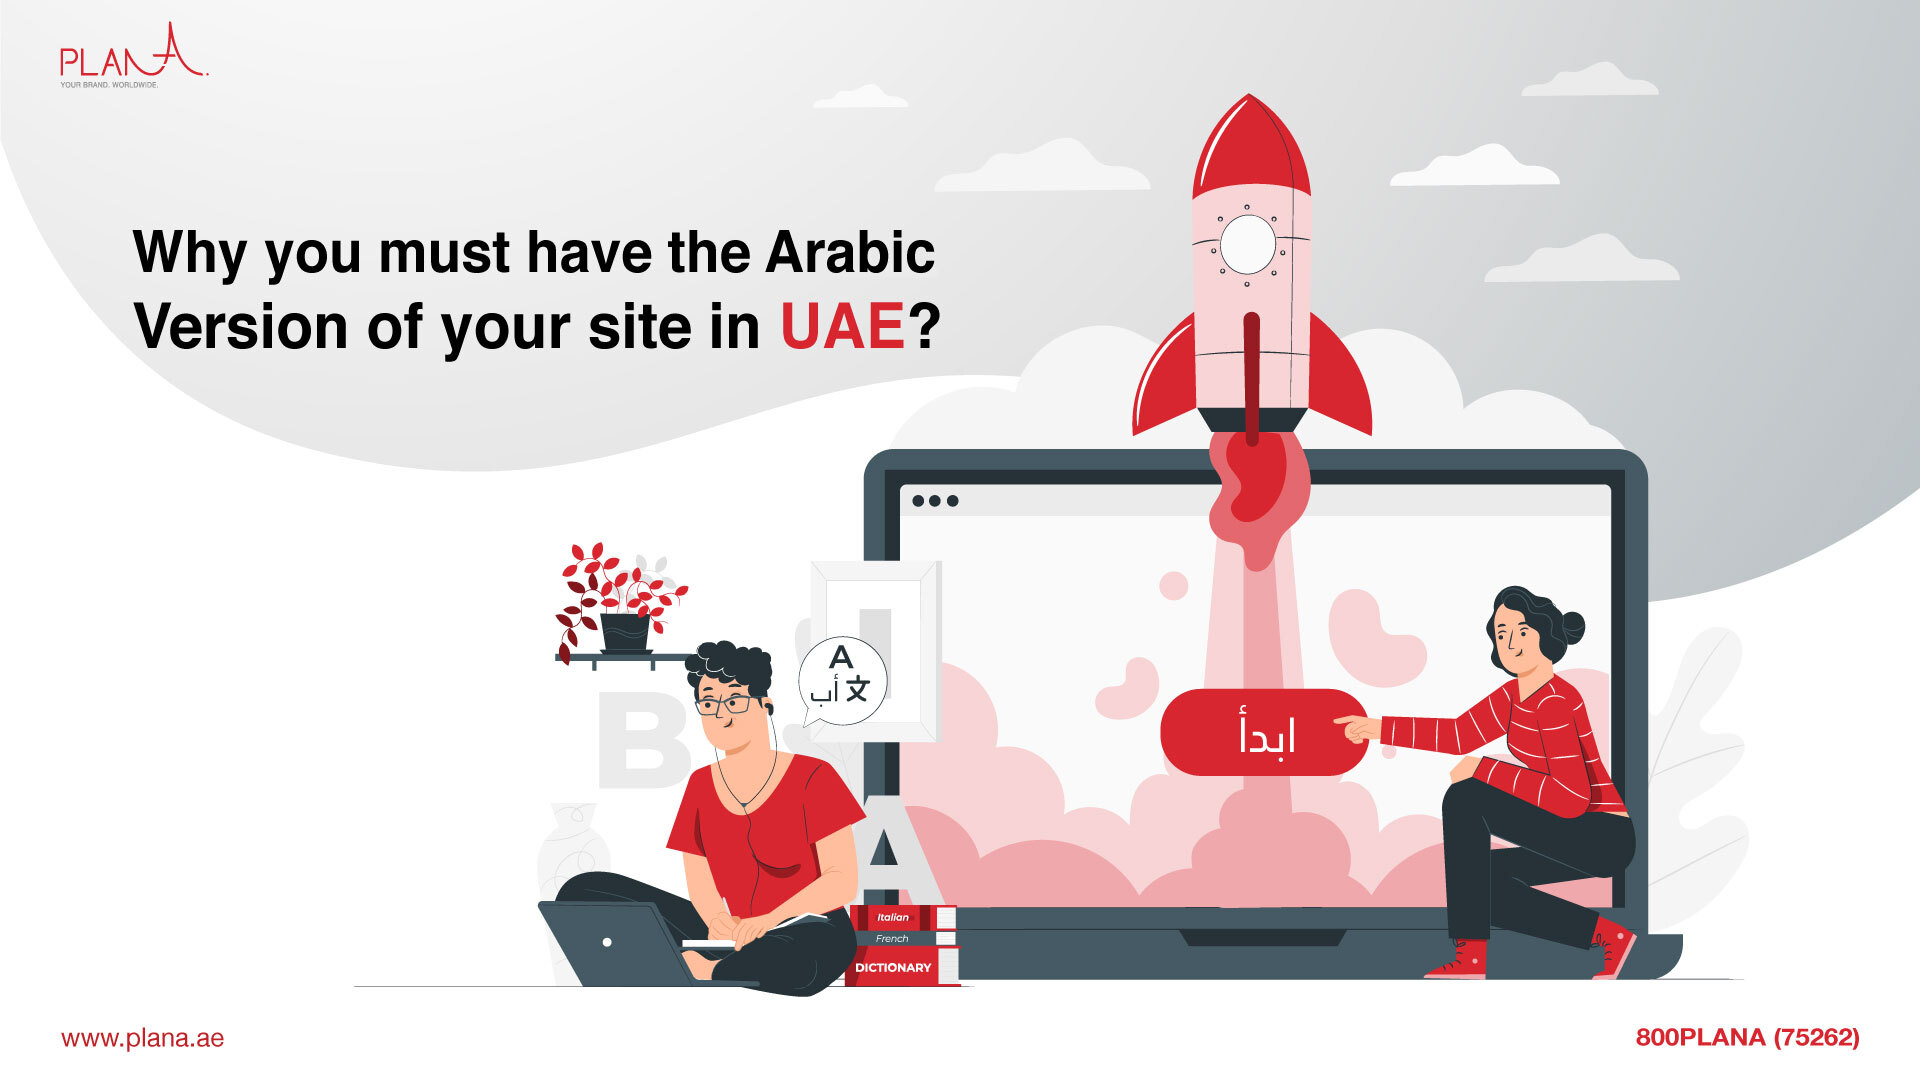 Why You Must Have The Arabic Version of Your Site in UAE?